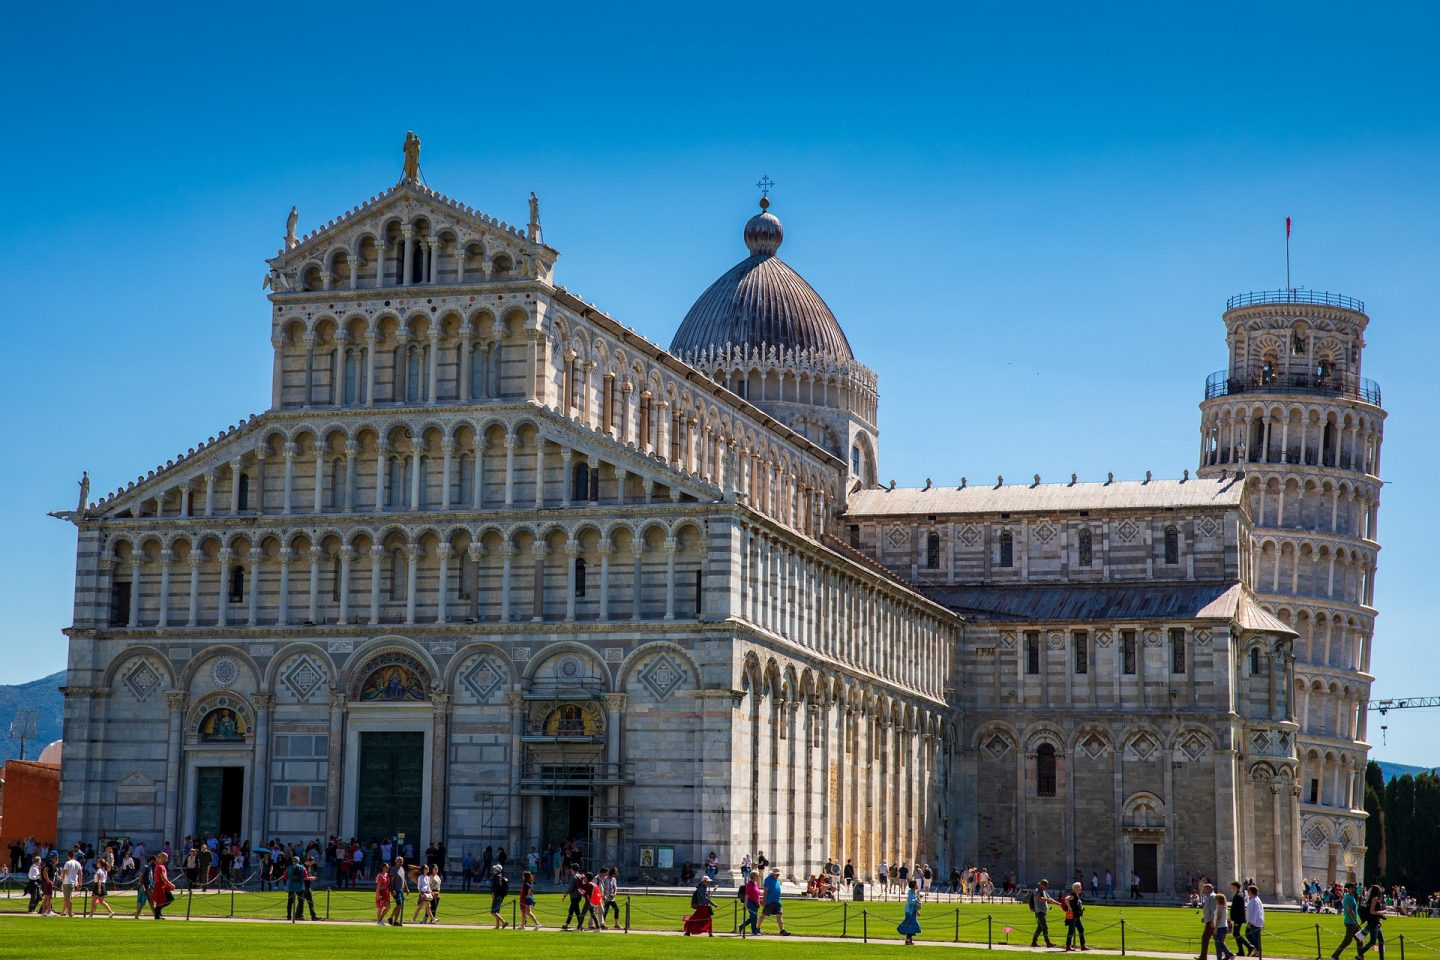 Image by Mikhail Vachtchenk0 from Pixabay, piazza dei miracoli, pisa, italy